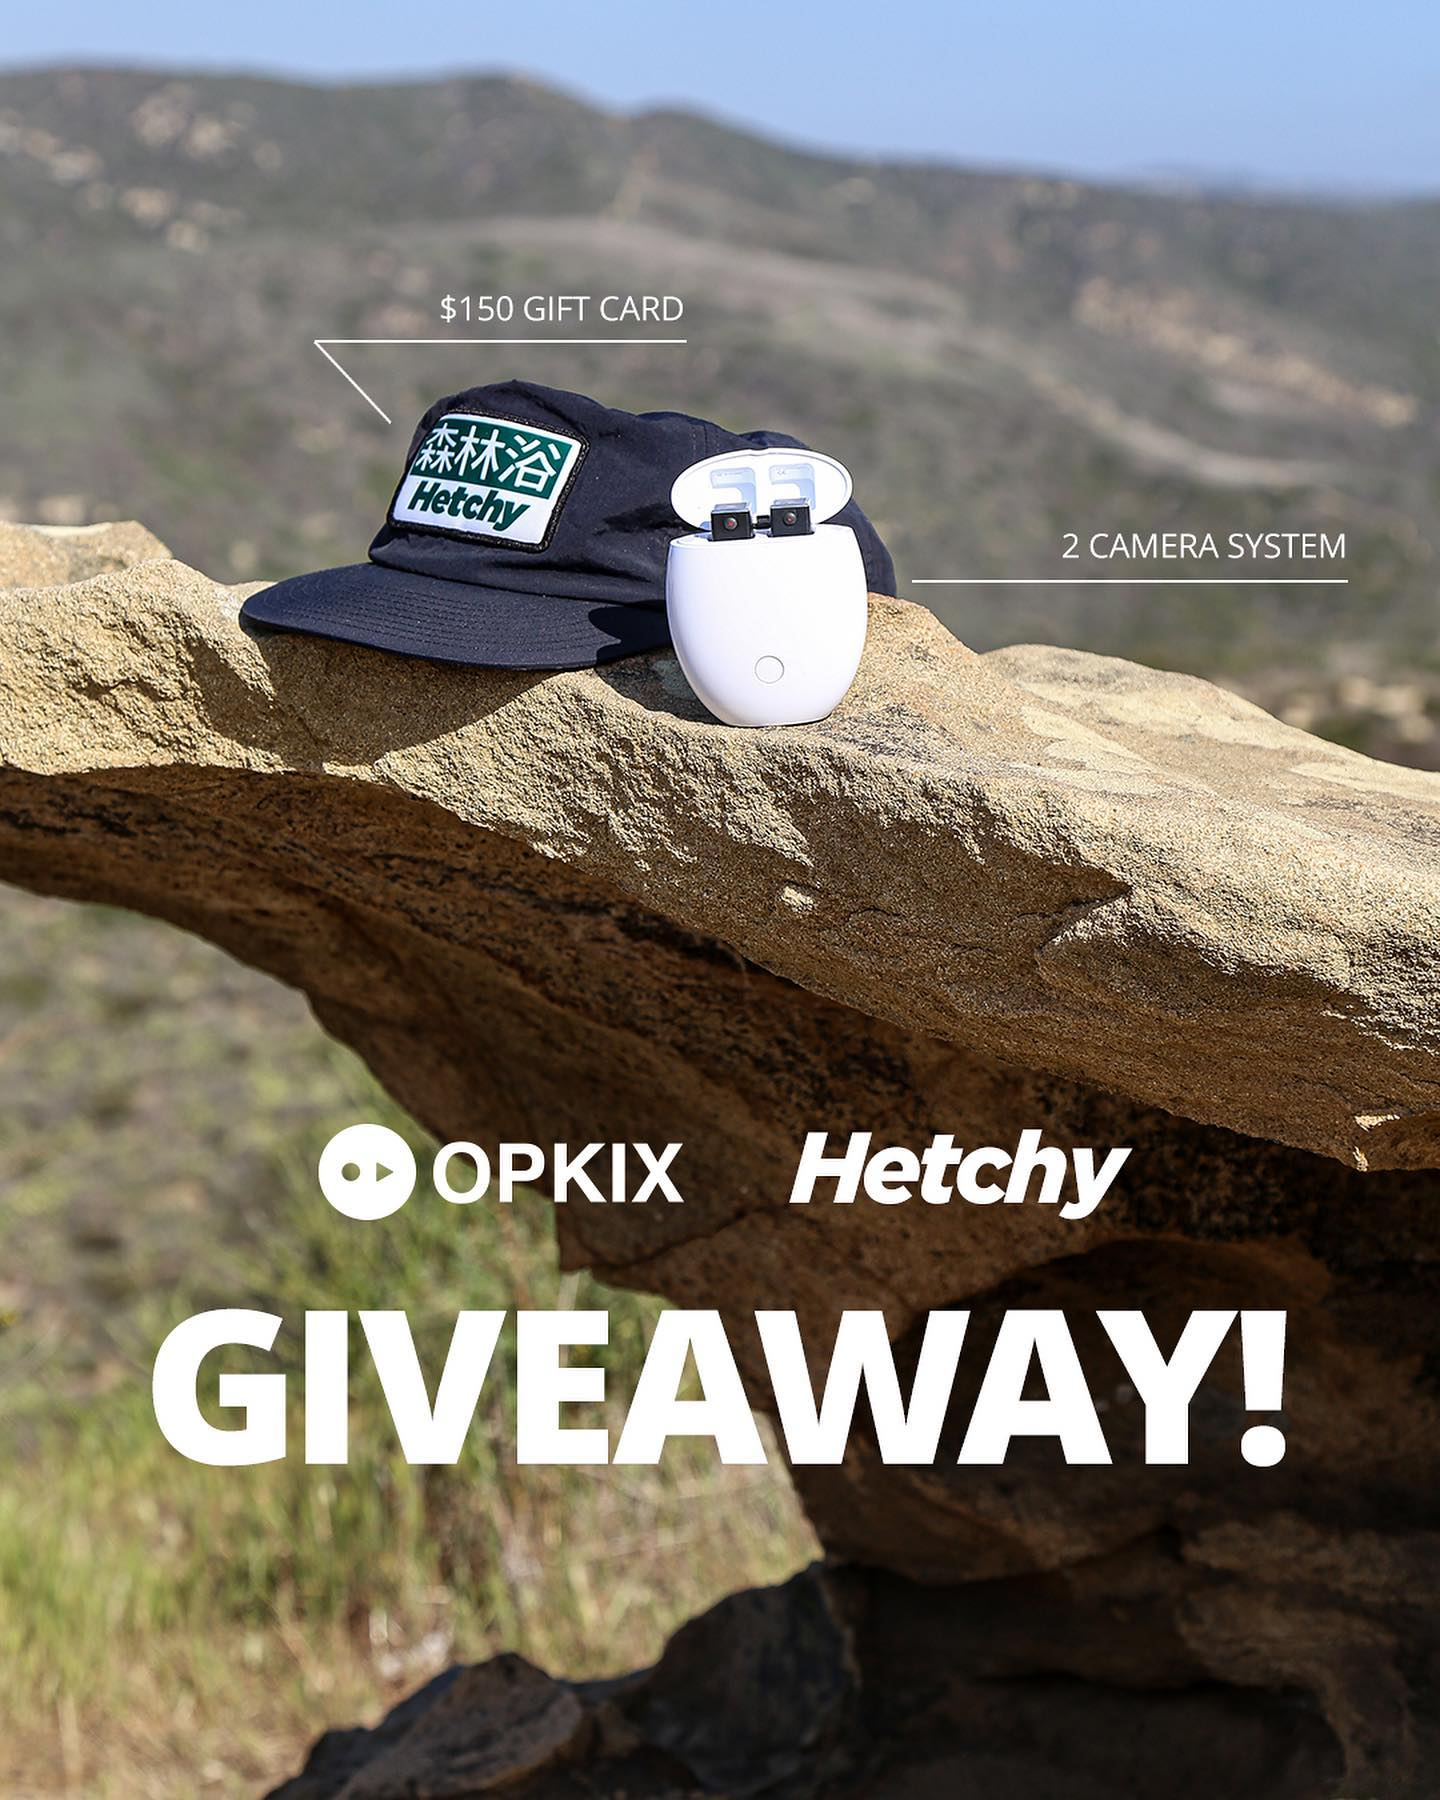 Hetchy Cap and OPKIX system on a ledge in the mountains